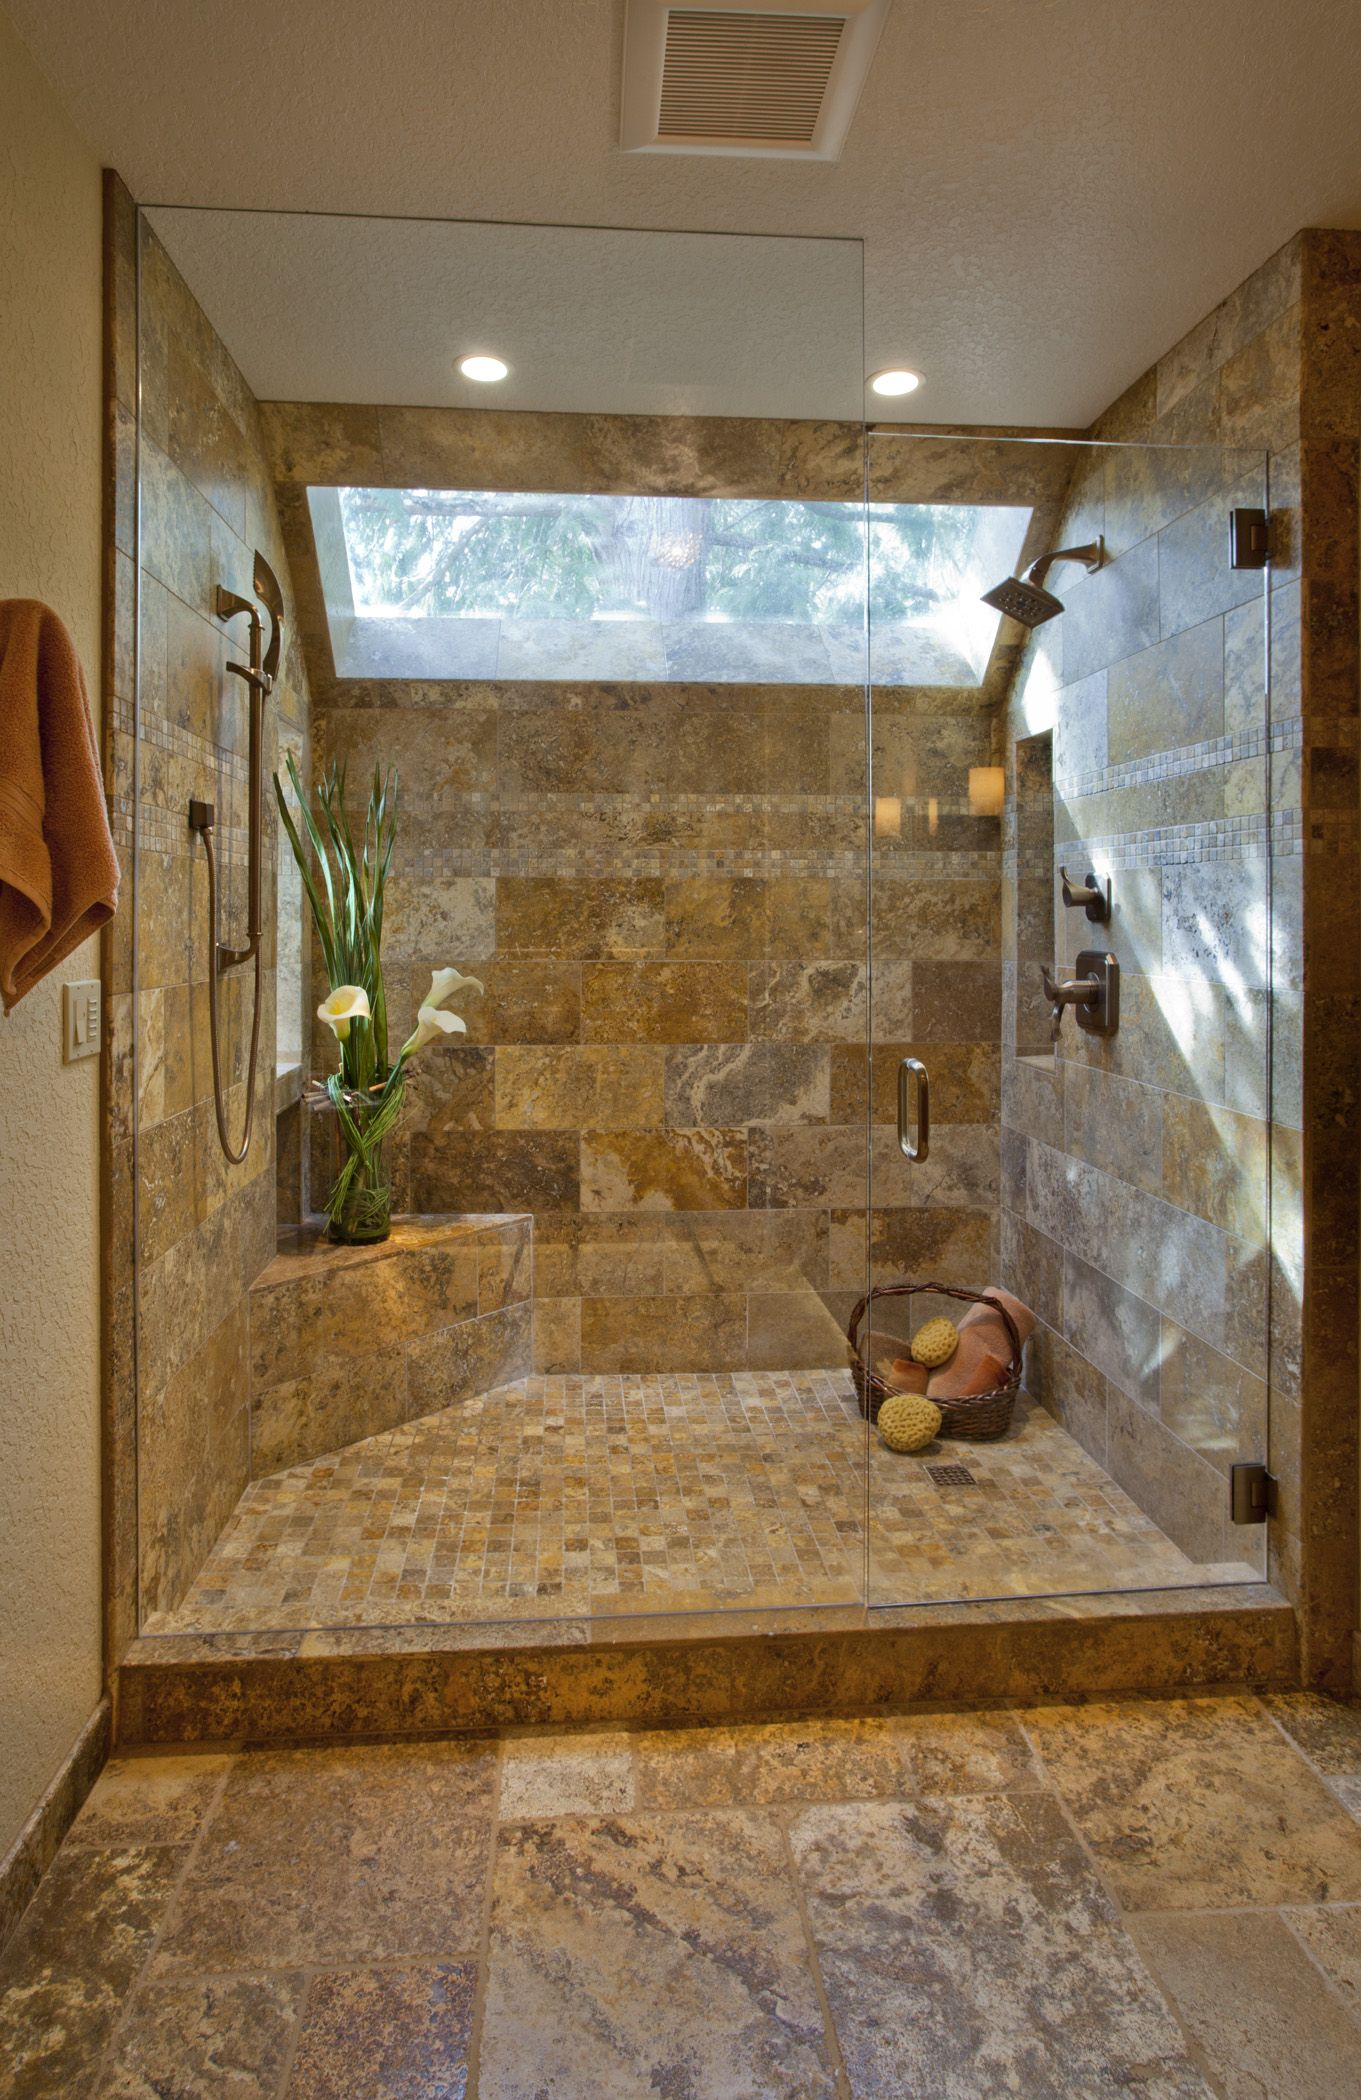 Travertine shower i really like this shower home decor pinterest travertine shower for Travertine tile bathroom ideas